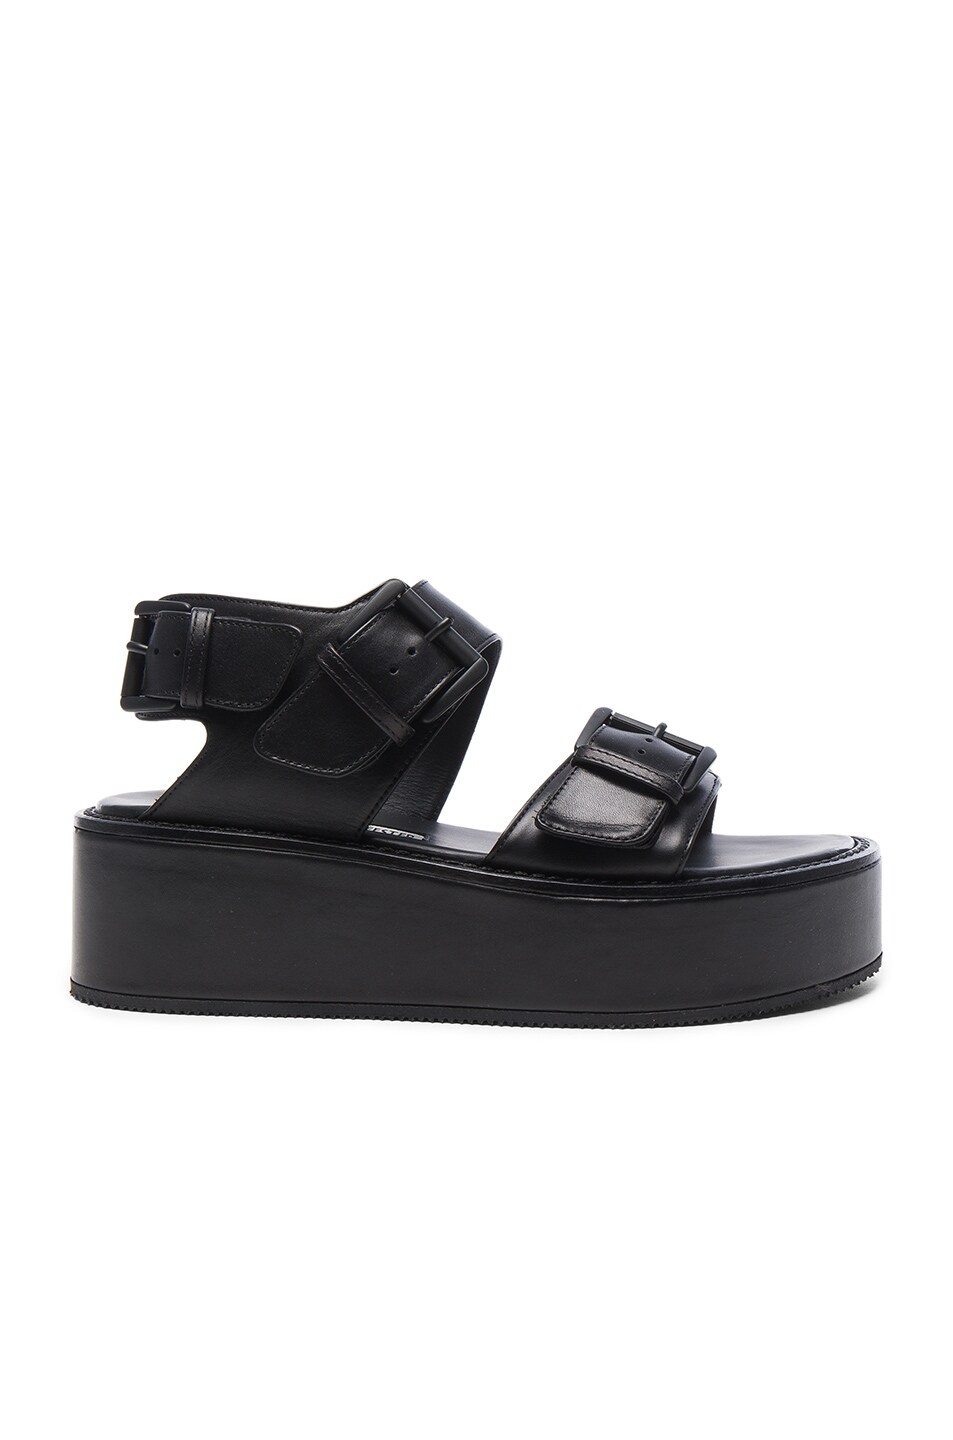 pay with paypal cheap price top quality Ann Demeulemeester Leather Platform Sandals uKI5Itw4